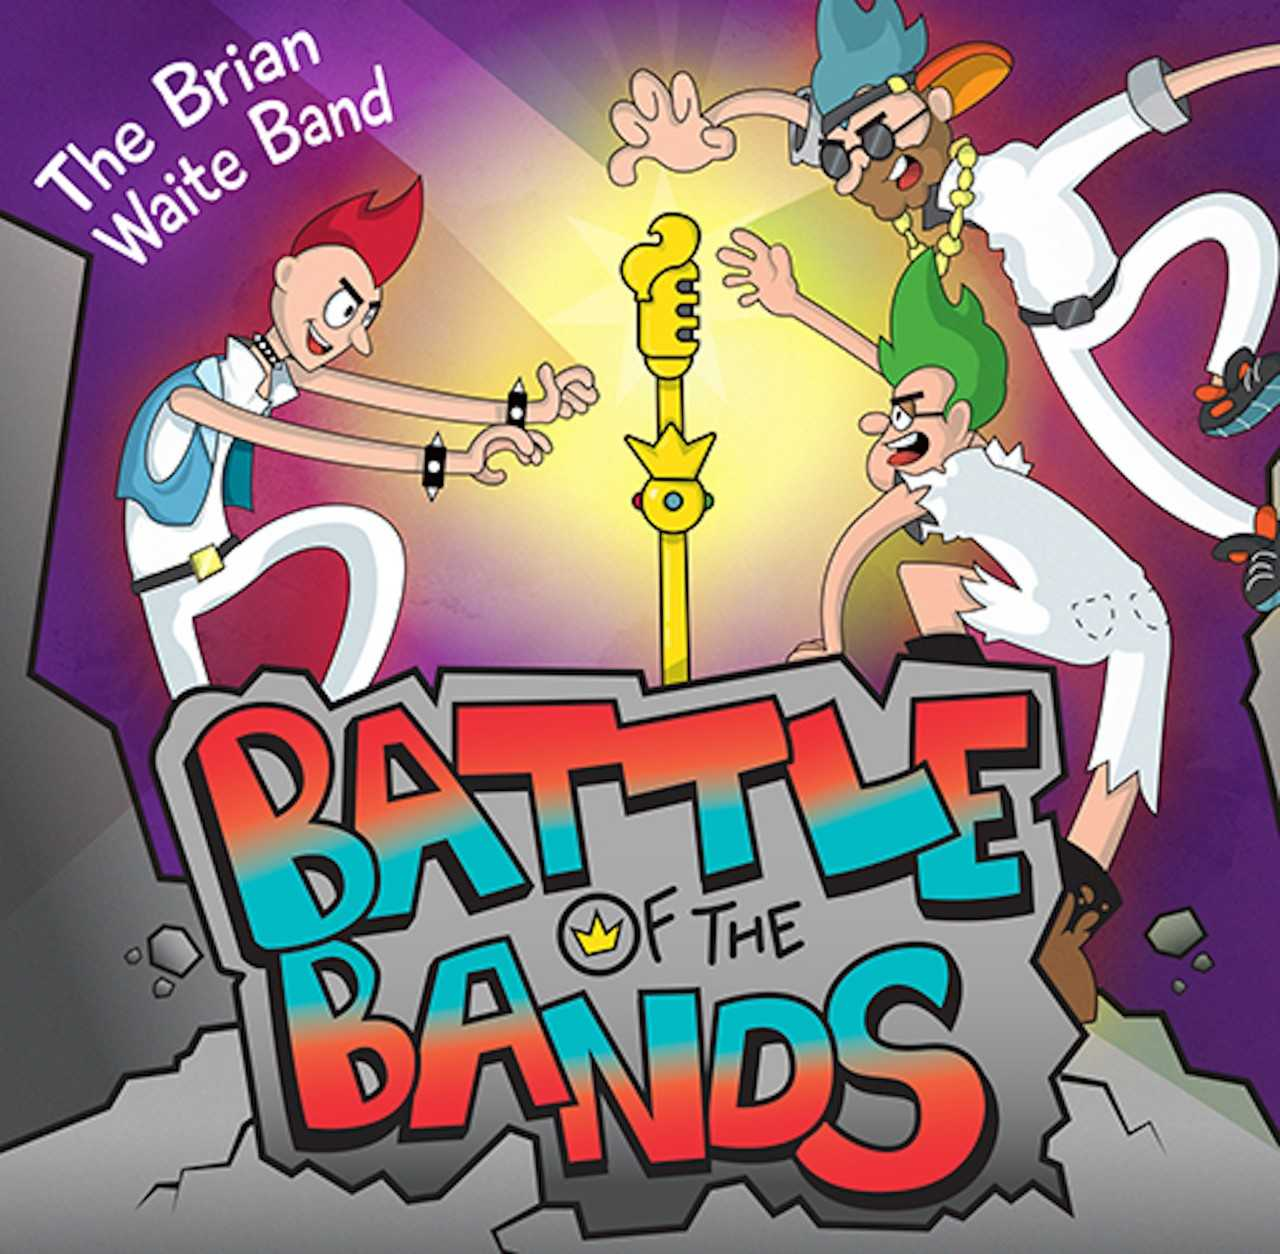 "Brian Waite Band's ""Battle of the Bands"" Family Musical Adventure"